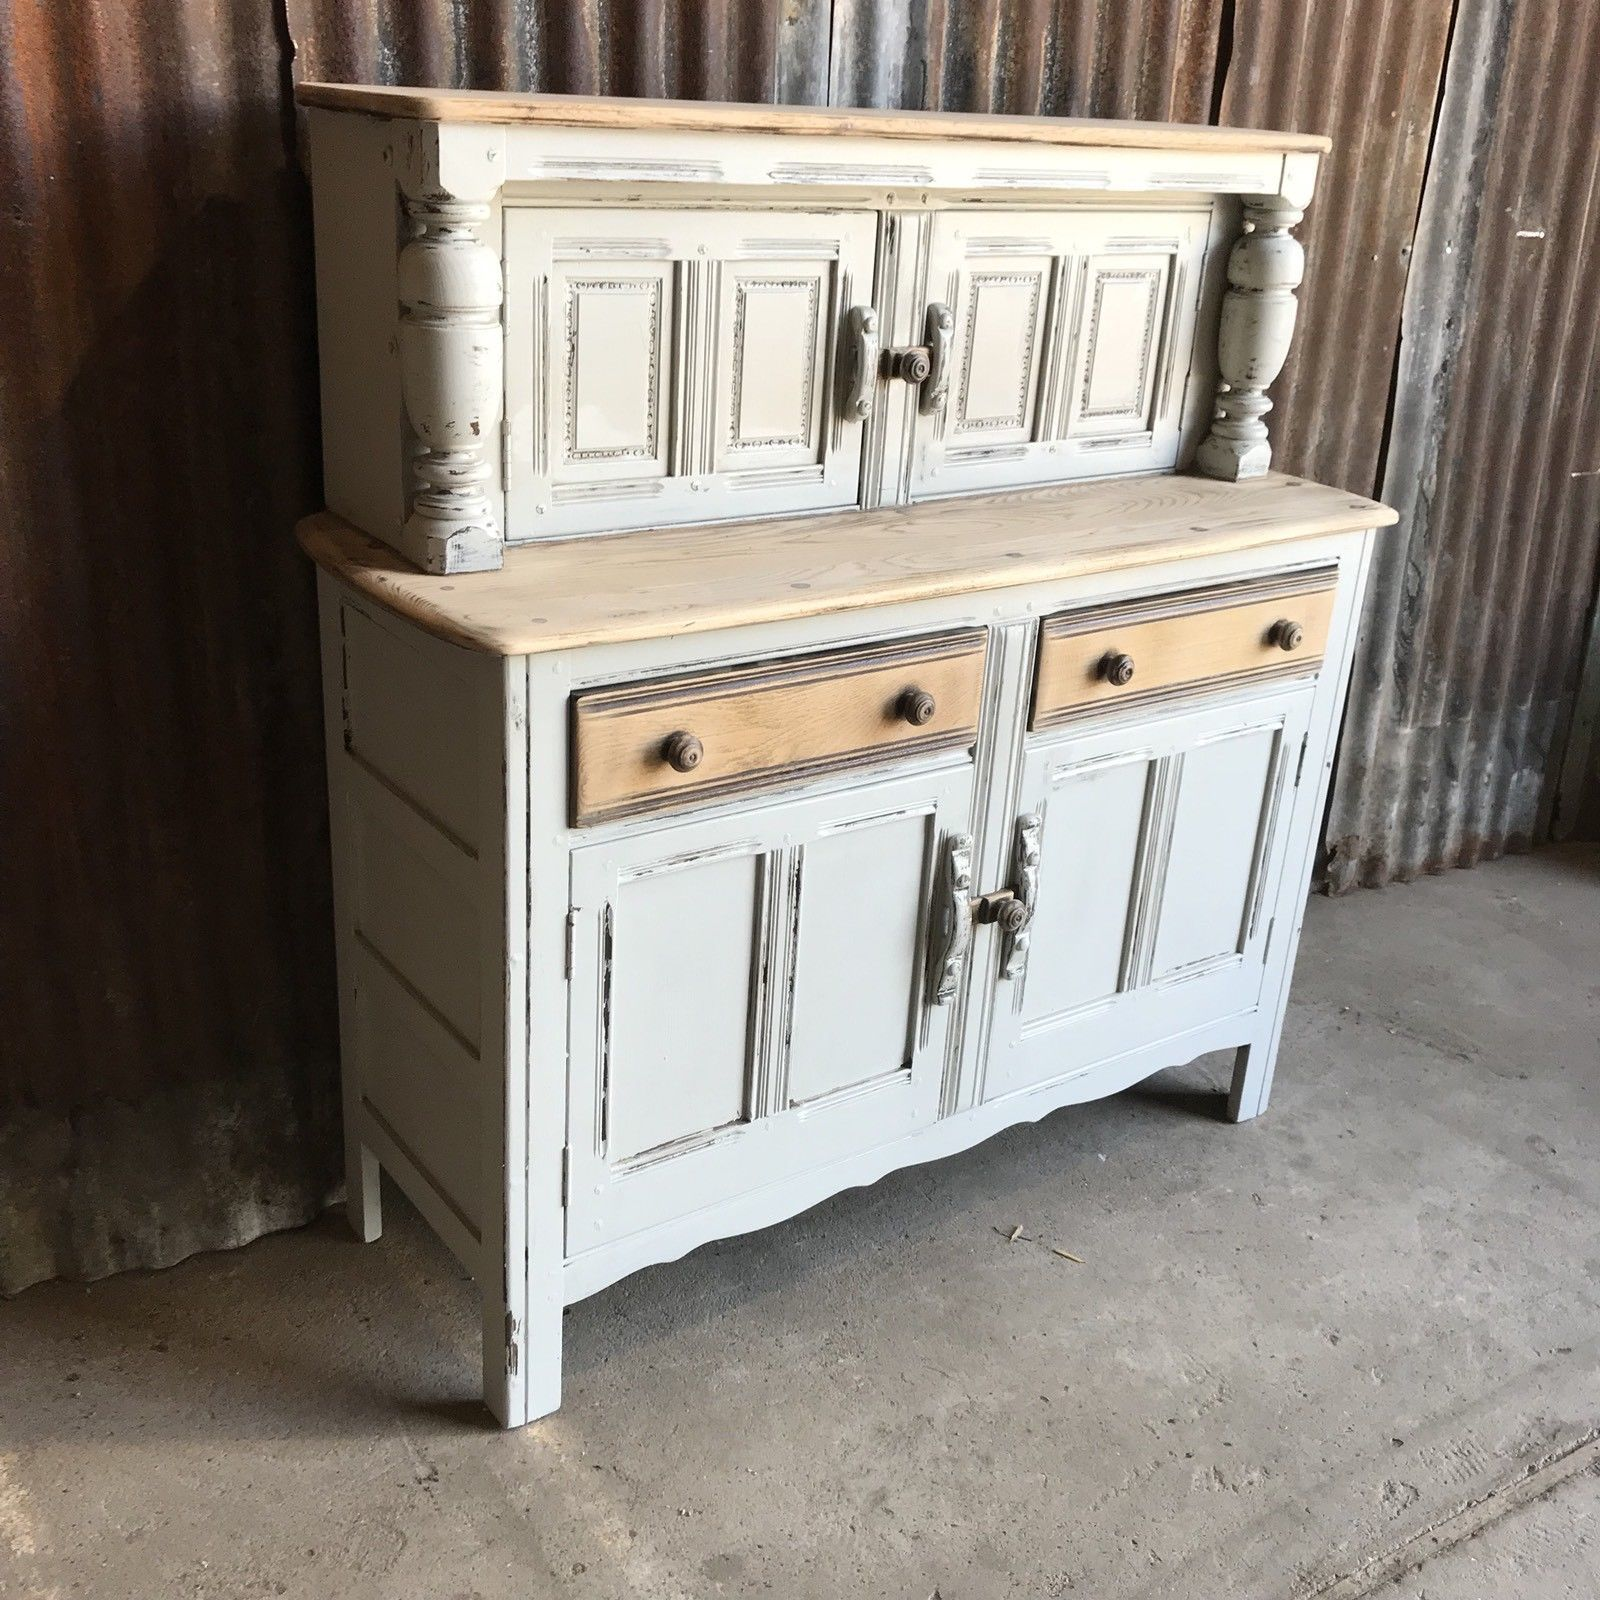 ercol-elm-court-cupboard-buffet-welsh-dresser-painted-country-chic-farmhouse